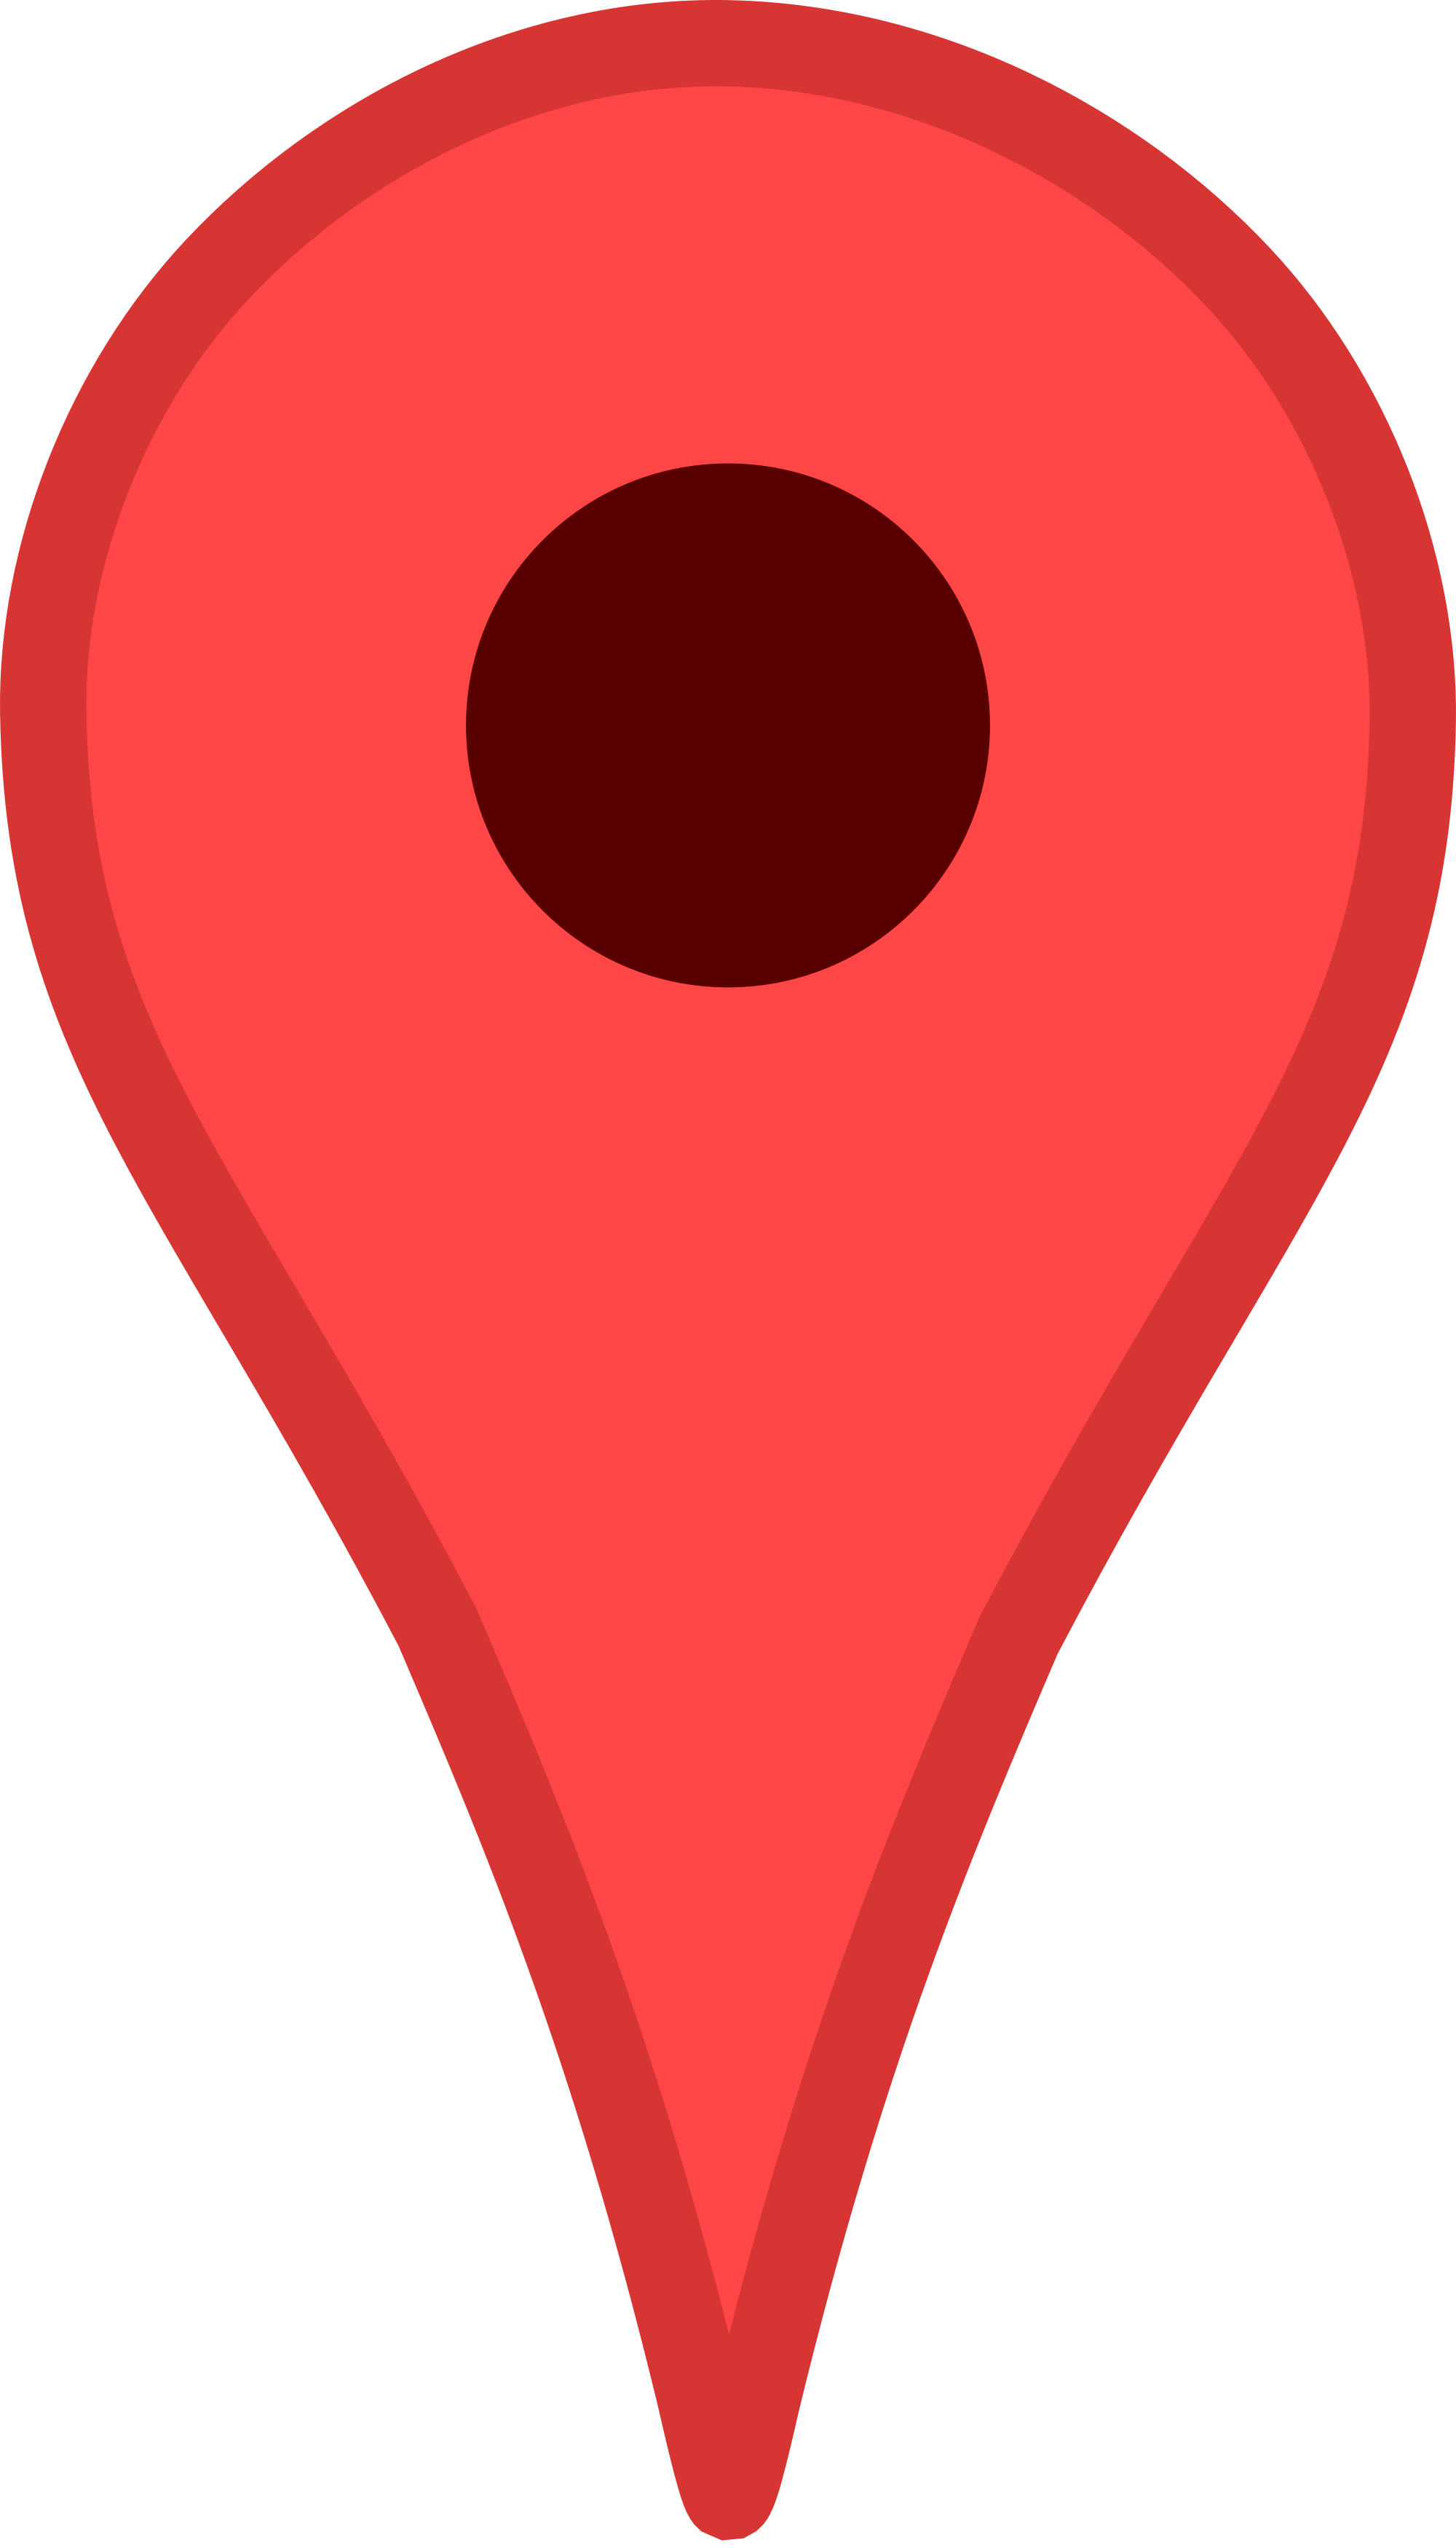 Map clipart map work. File google maps pin